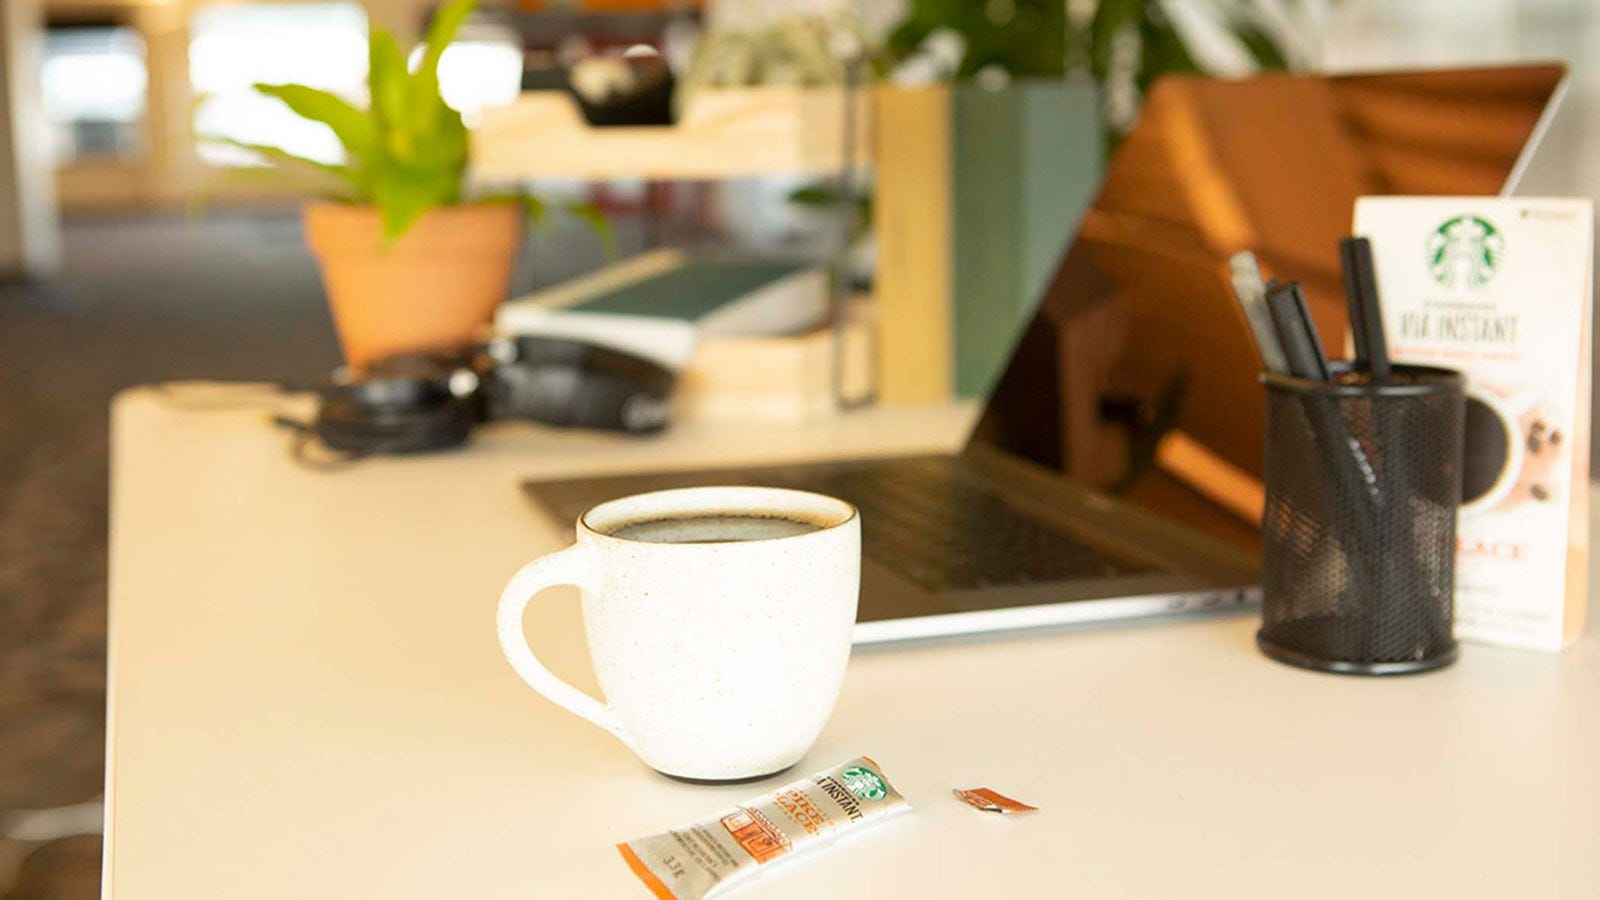 A cup of Starbucks Via instant coffee next to a laptop.